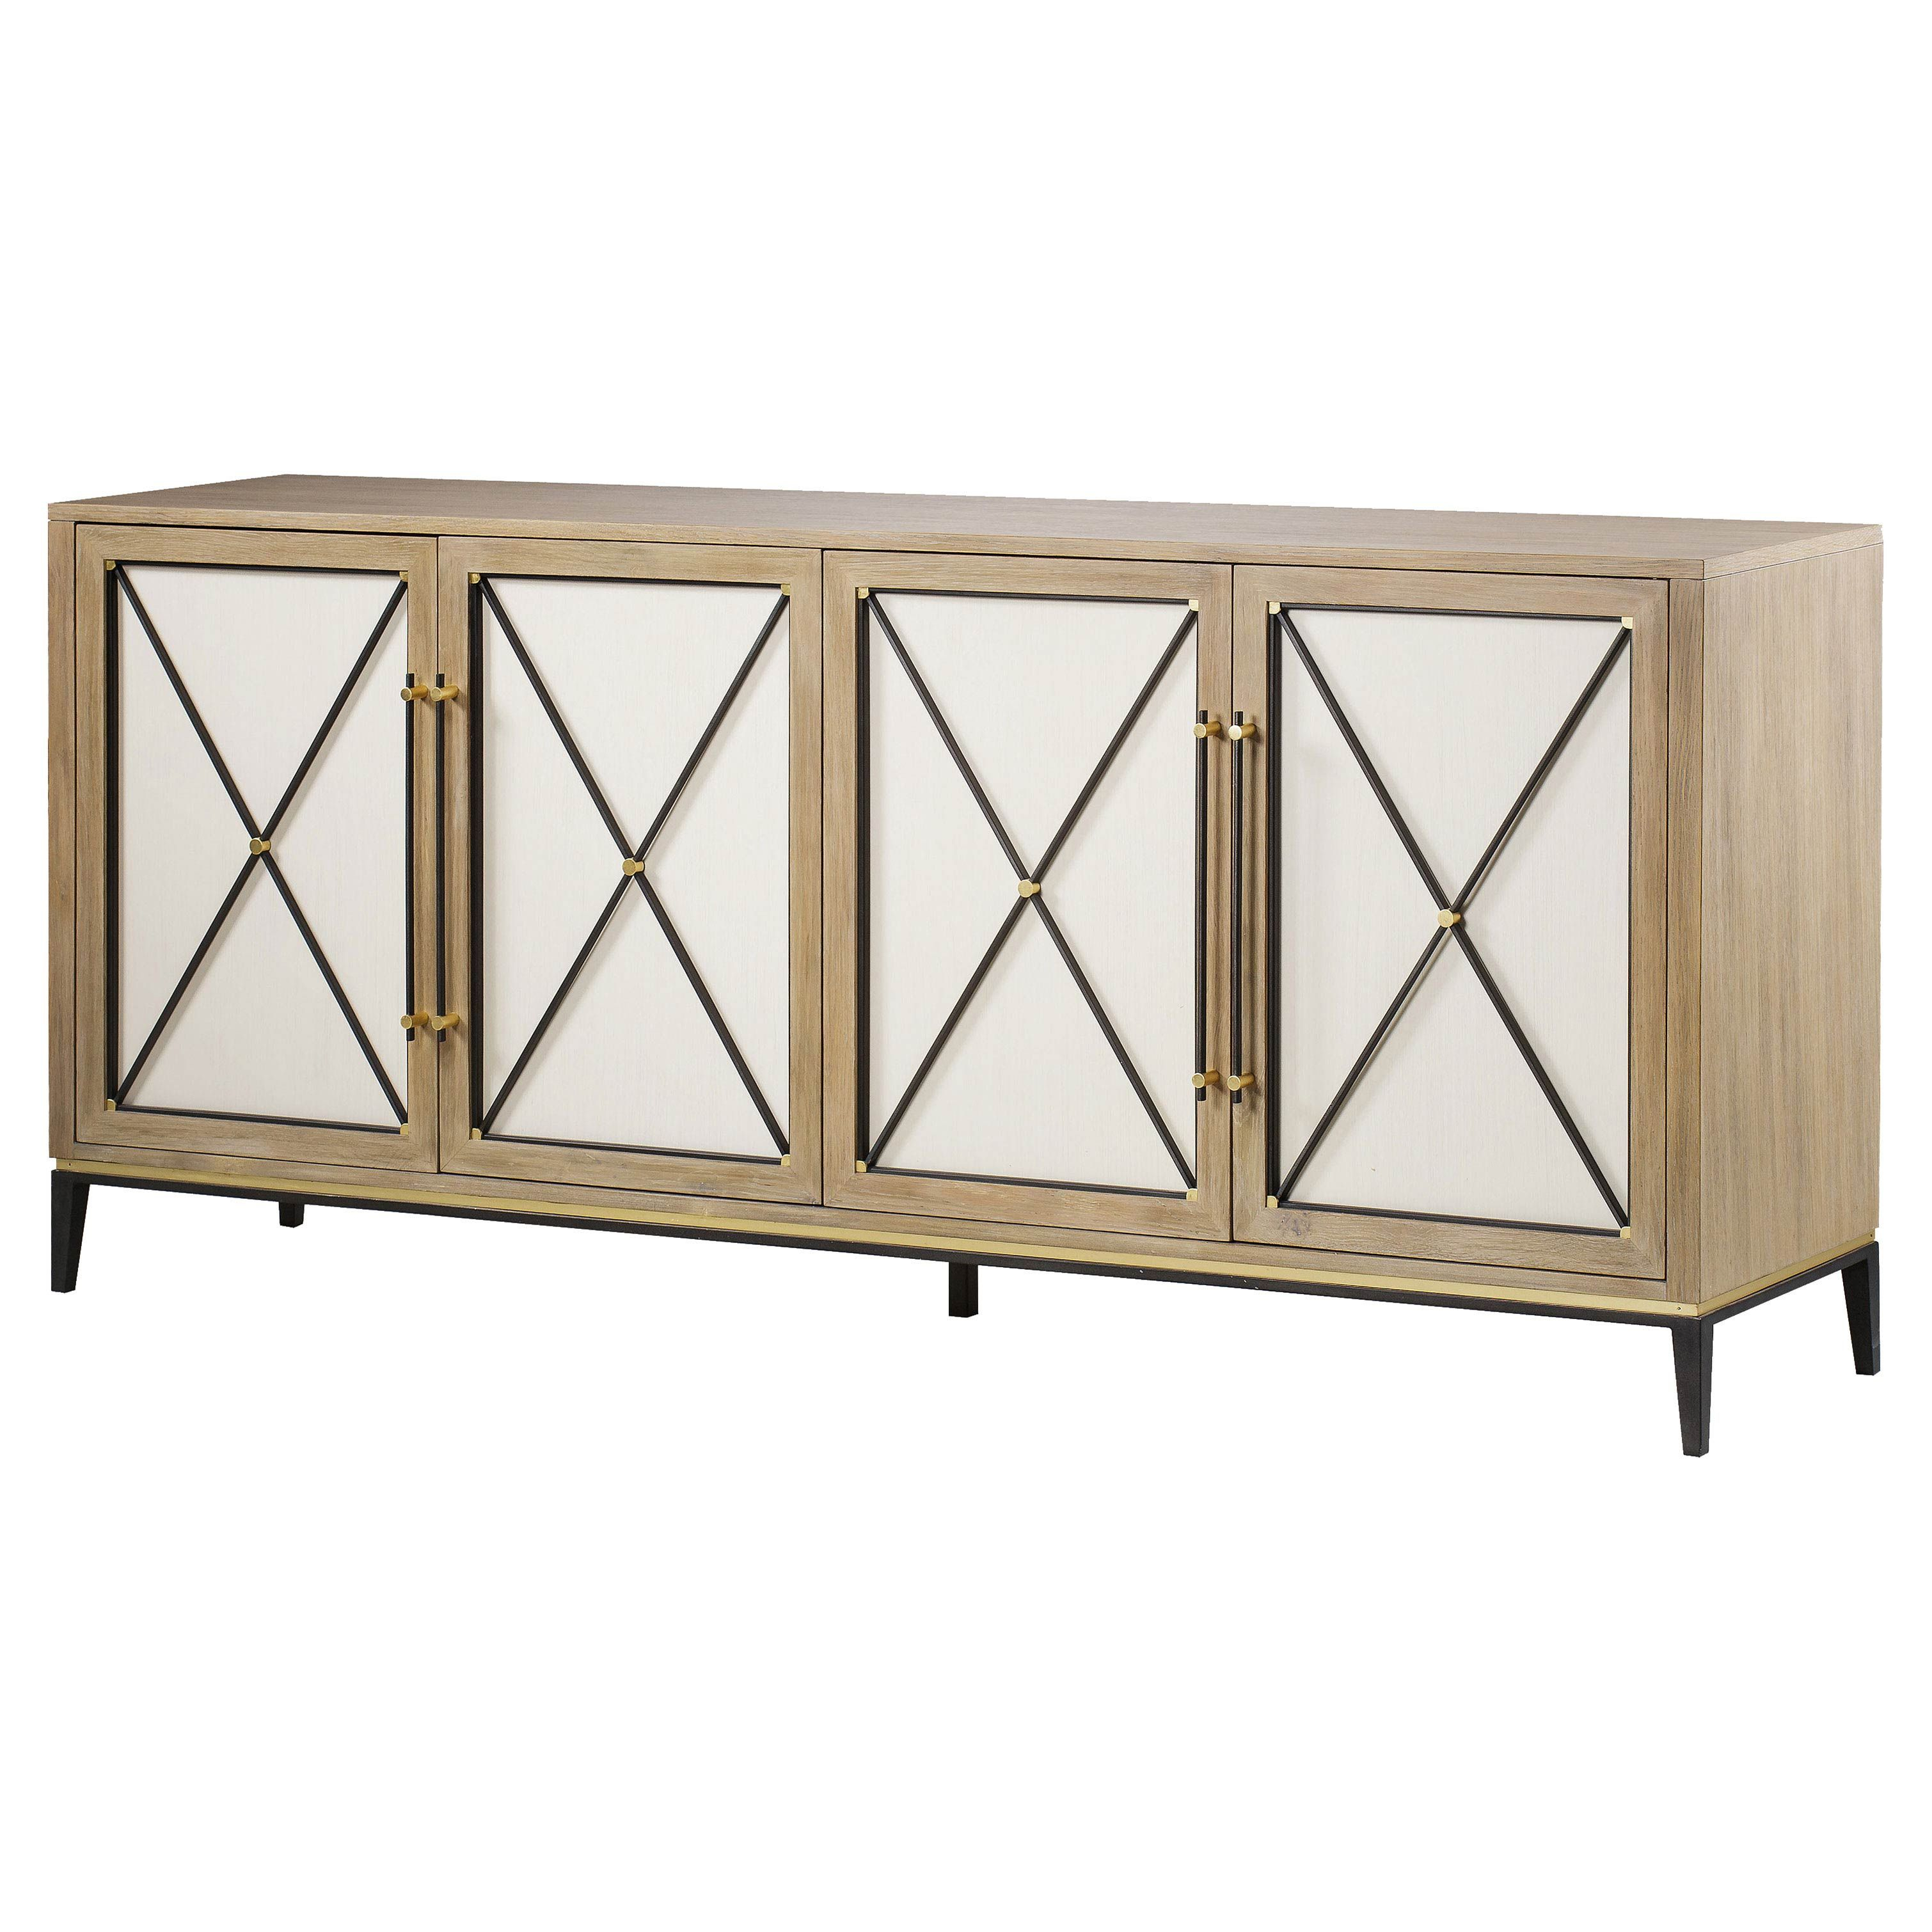 Carson Credenza Modern Oak 4 White Door Buffet Sideboard Intended For Best And Newest Ethelinda Media Credenzas (View 10 of 20)